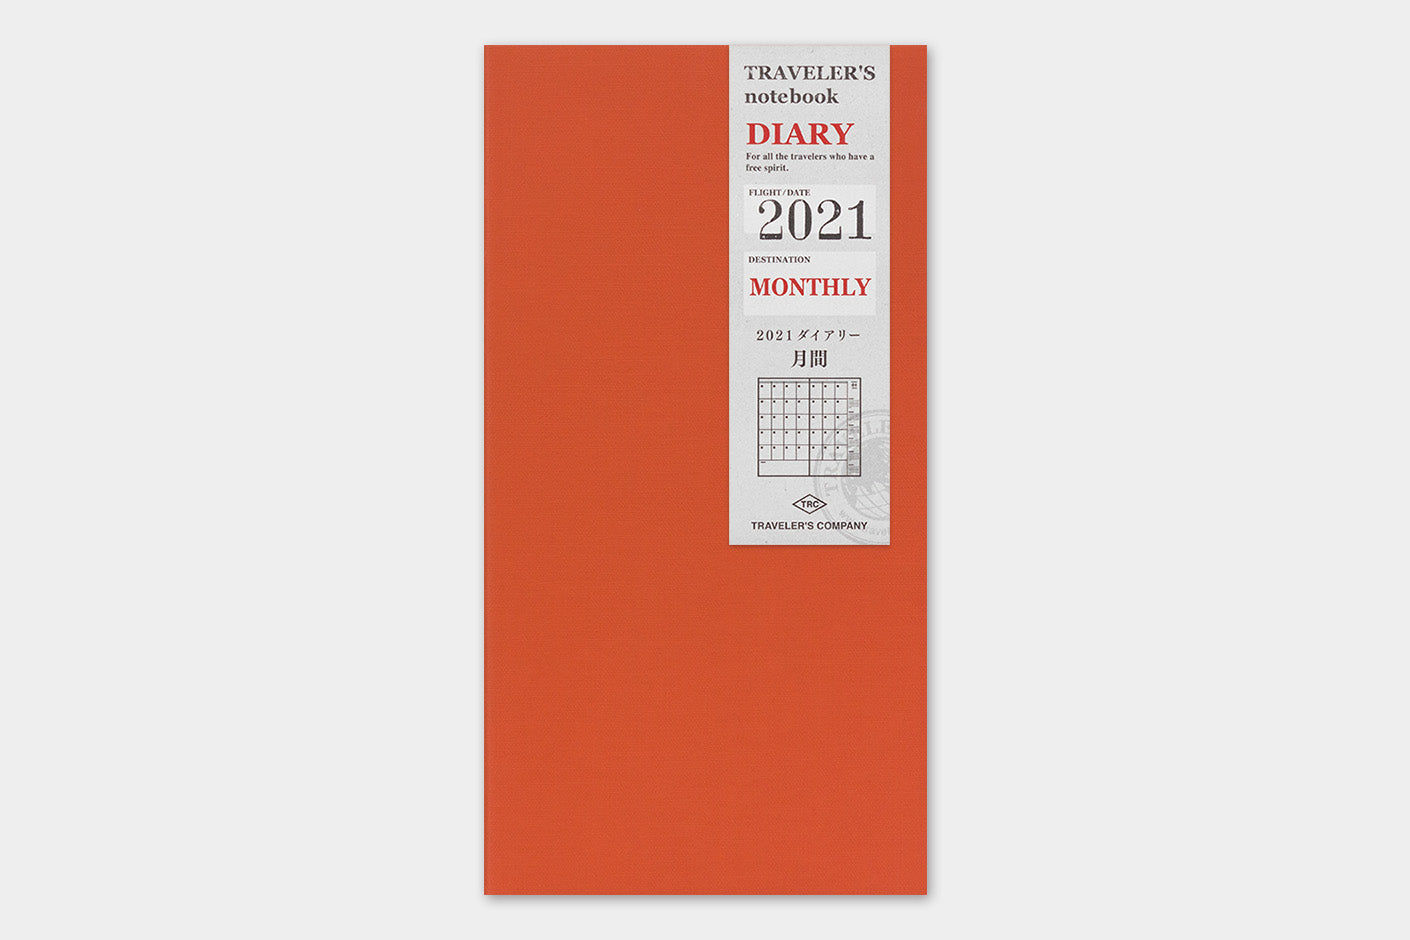 2021 Traveler's Notebook (Regular Size) - Month on 2 pages Diary. PRE-ORDER